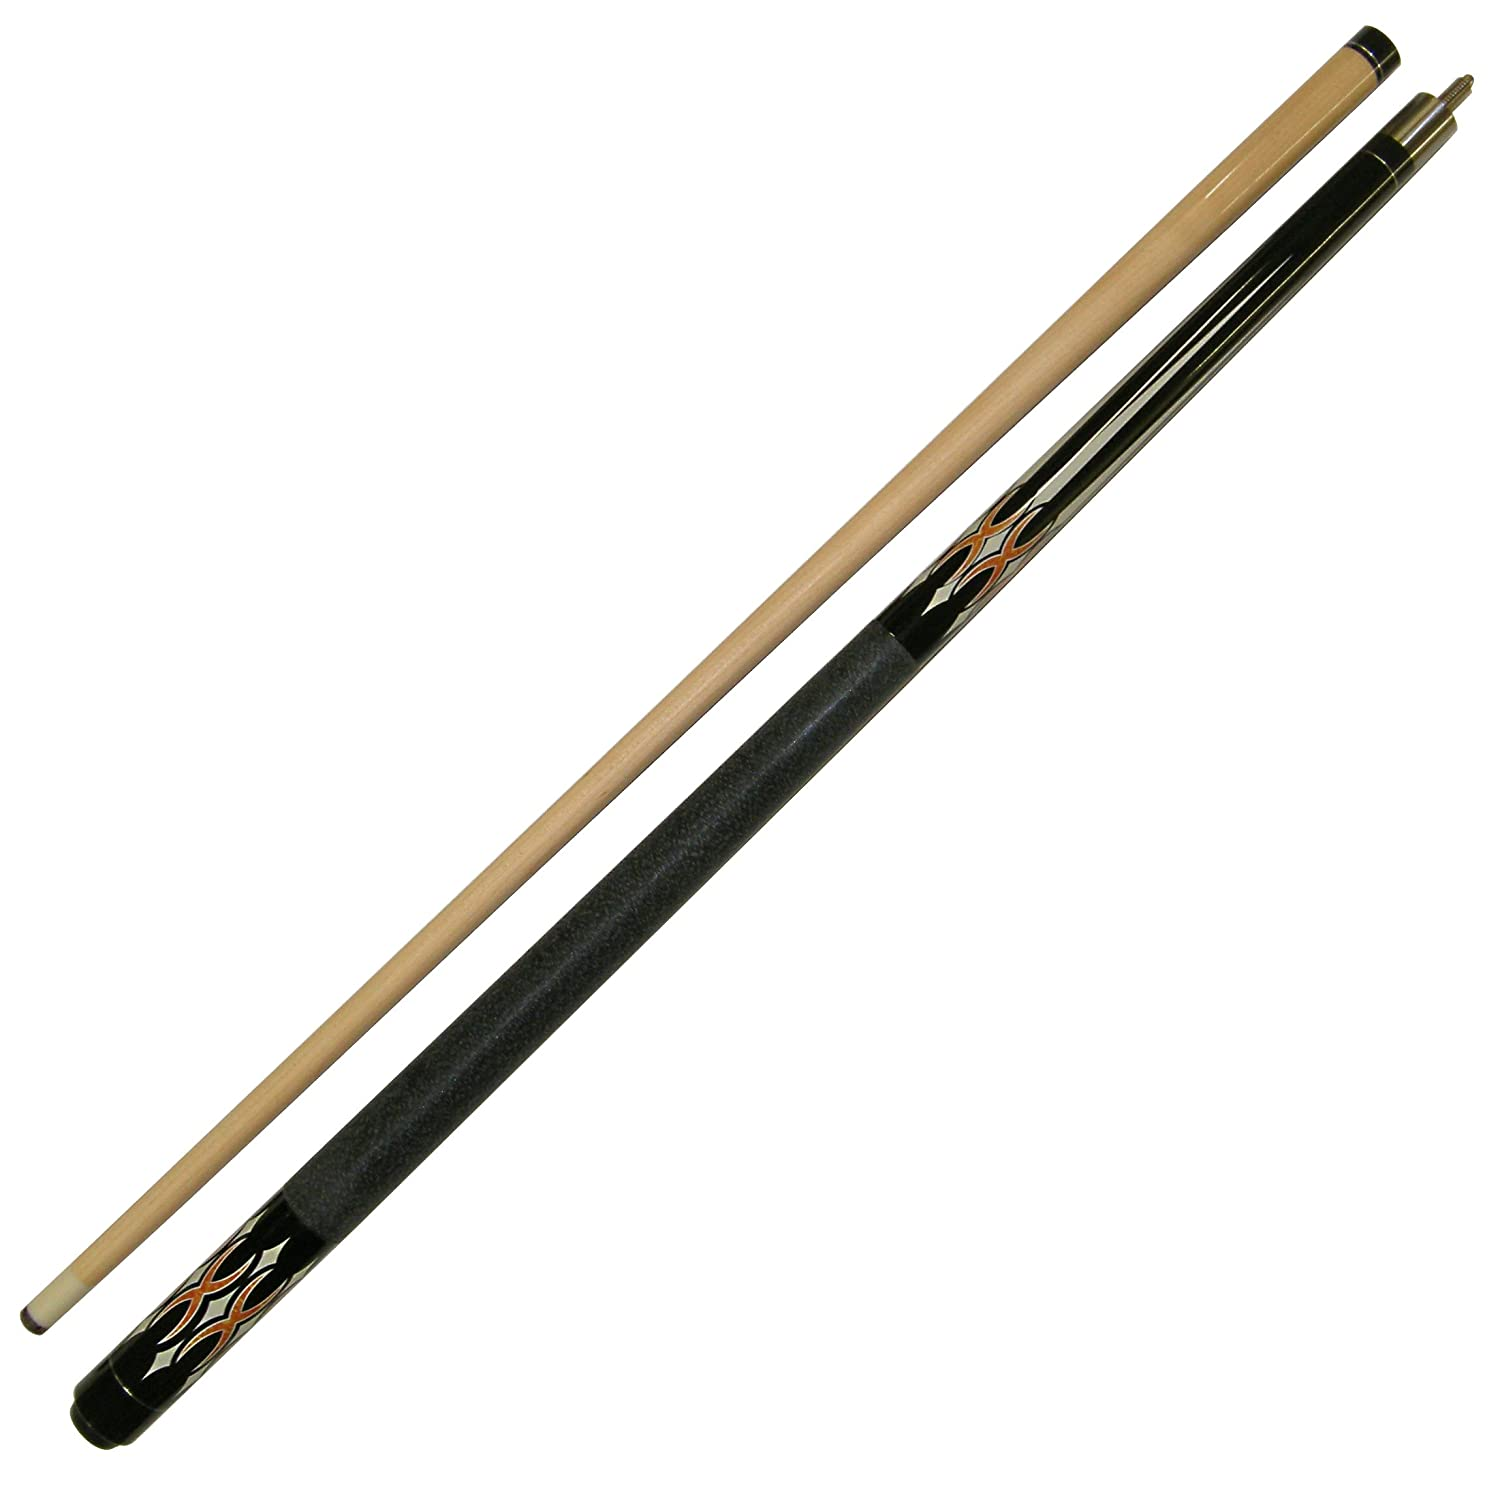 Iszy Billiards 58-Inch Hardwood Maple Pool Cue Billiard Stick, 2-Piece, Black, 19-Ounce BND-04-19